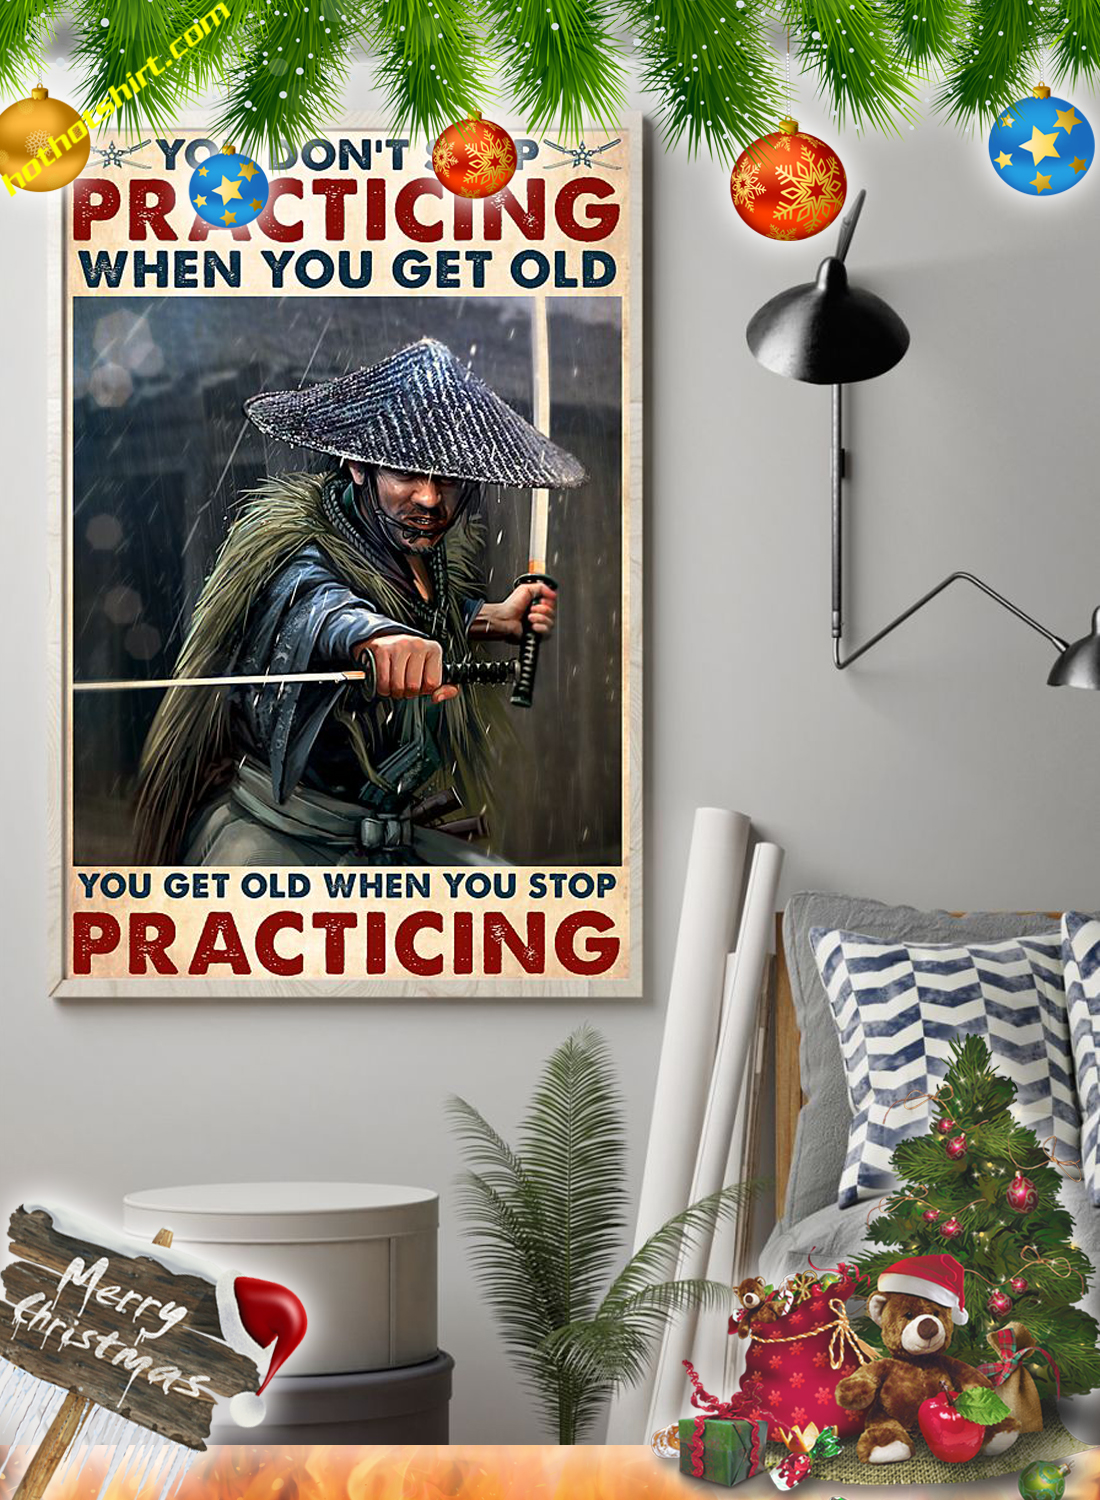 Samurai You don't stop practicing when you get old poster 1